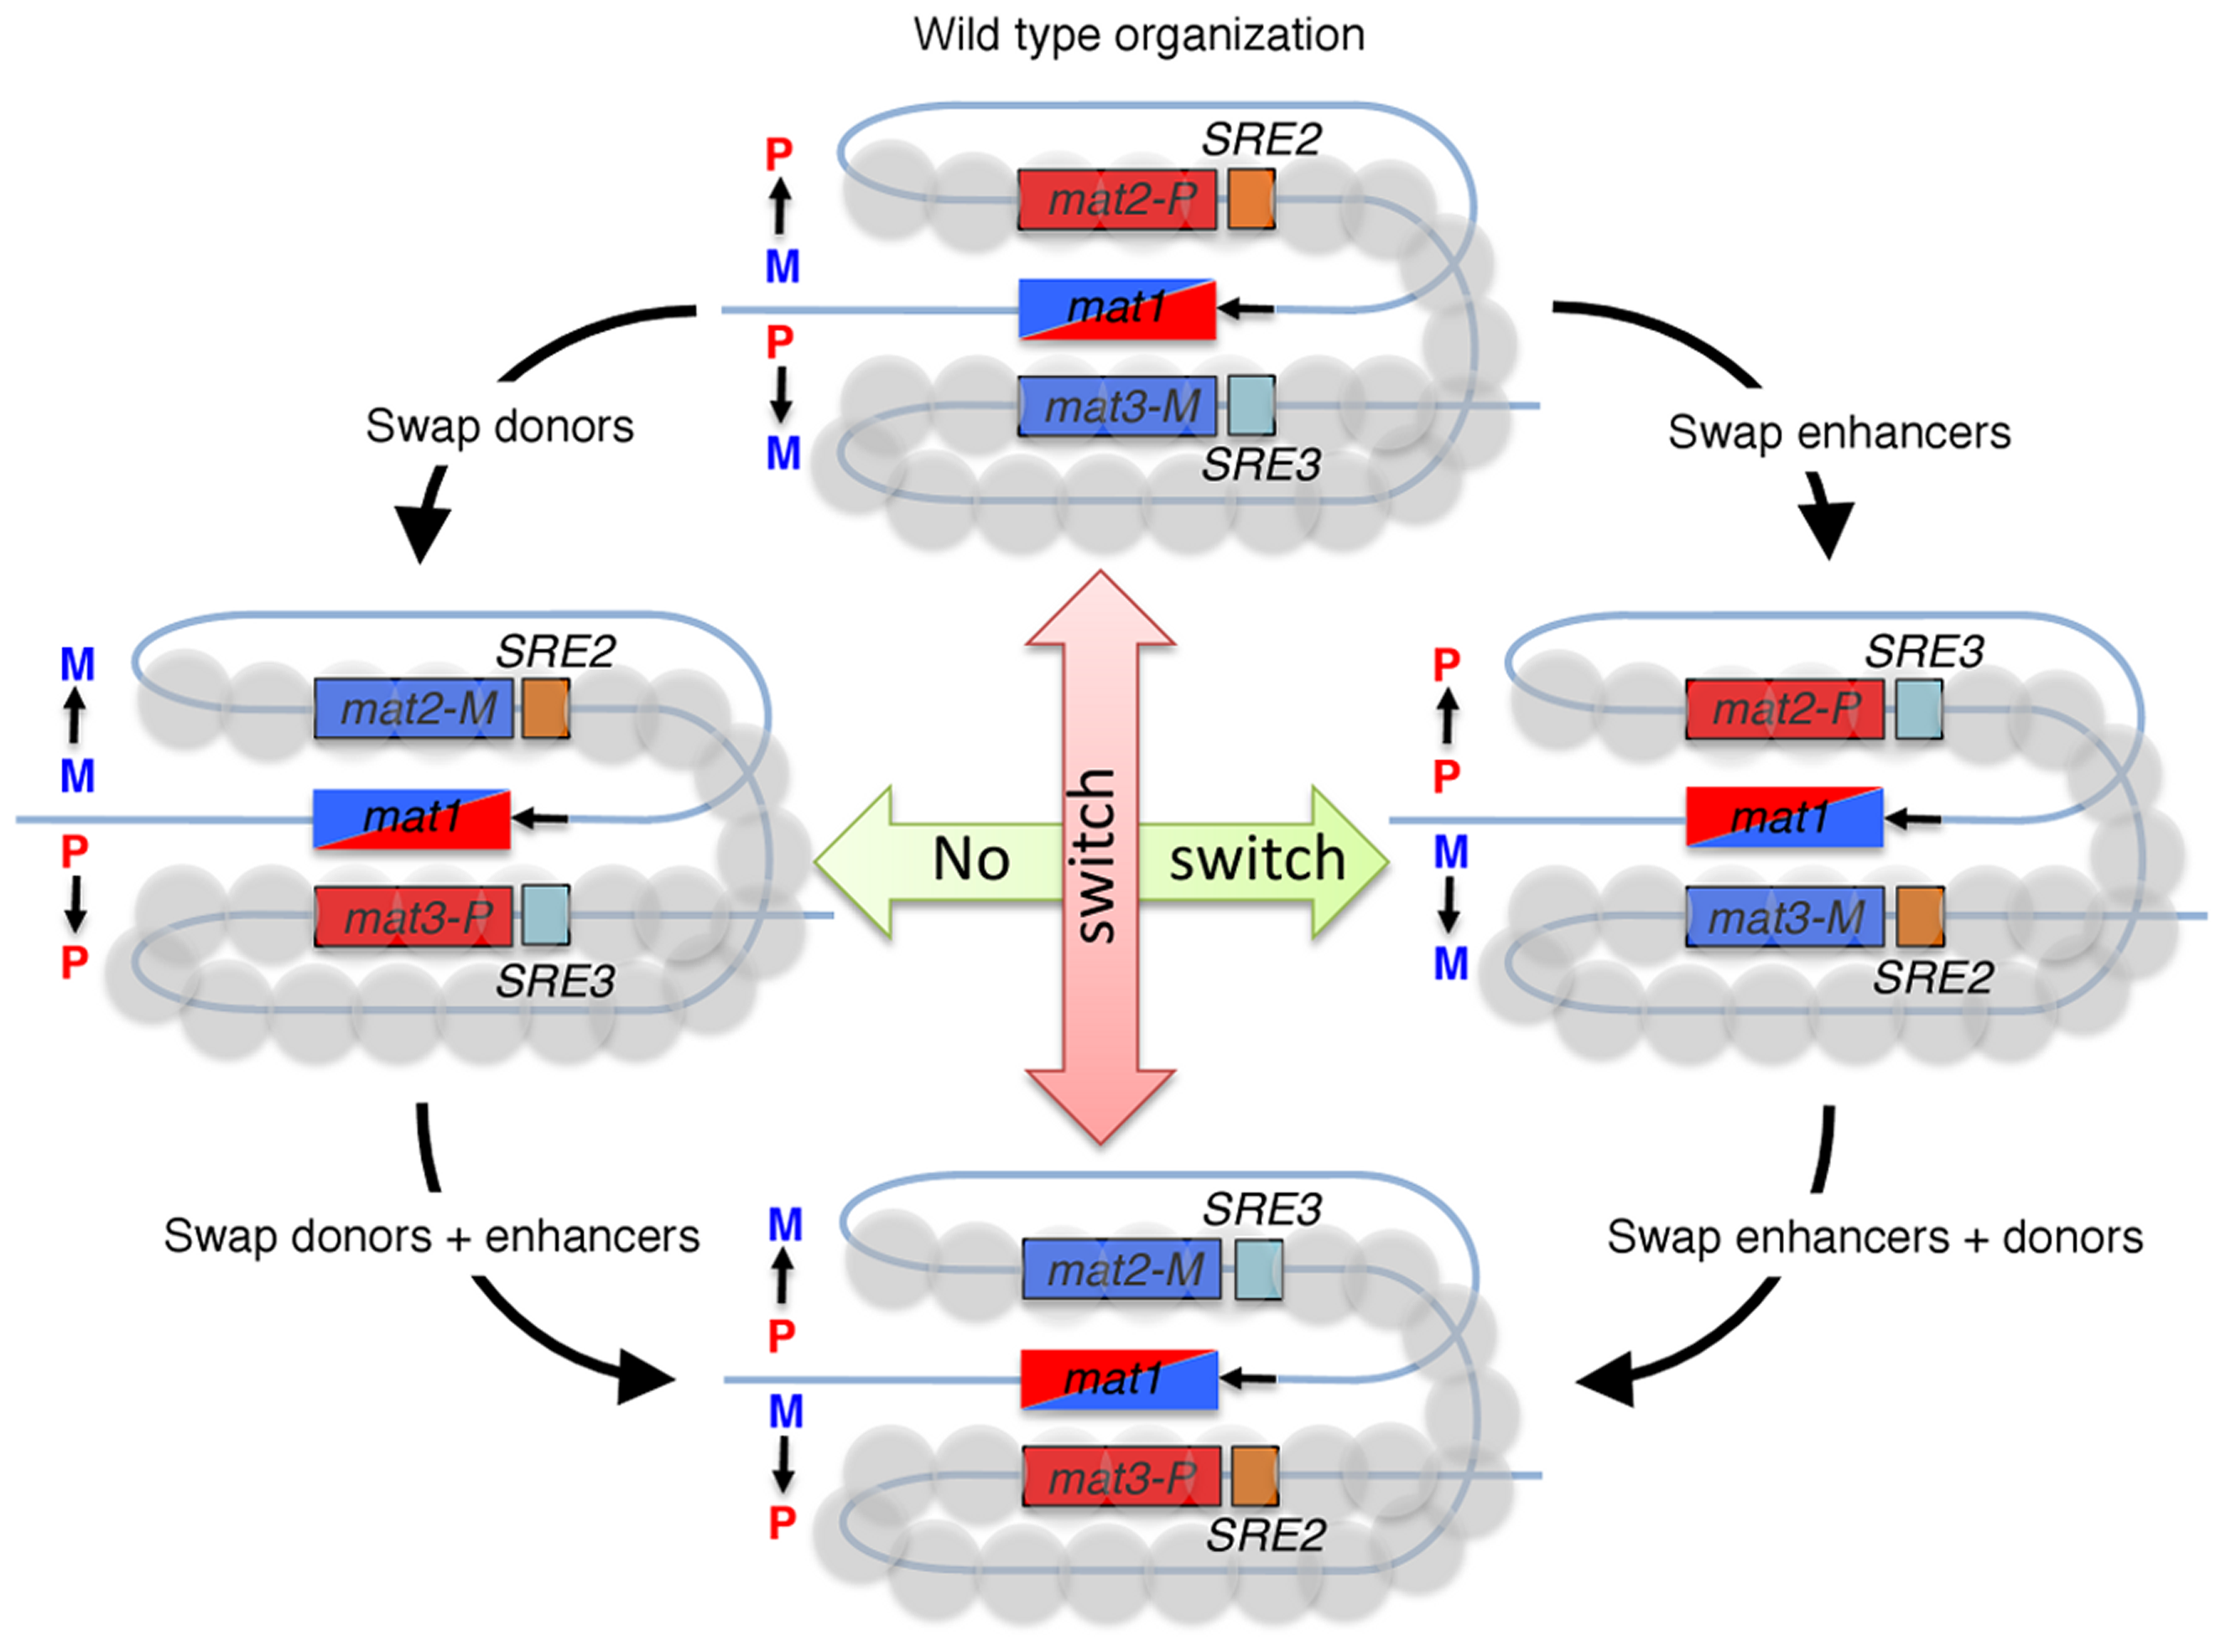 Fission yeast cells switch mating-type in a directional manner, by gene conversions of the <i>mat1</i> locus.